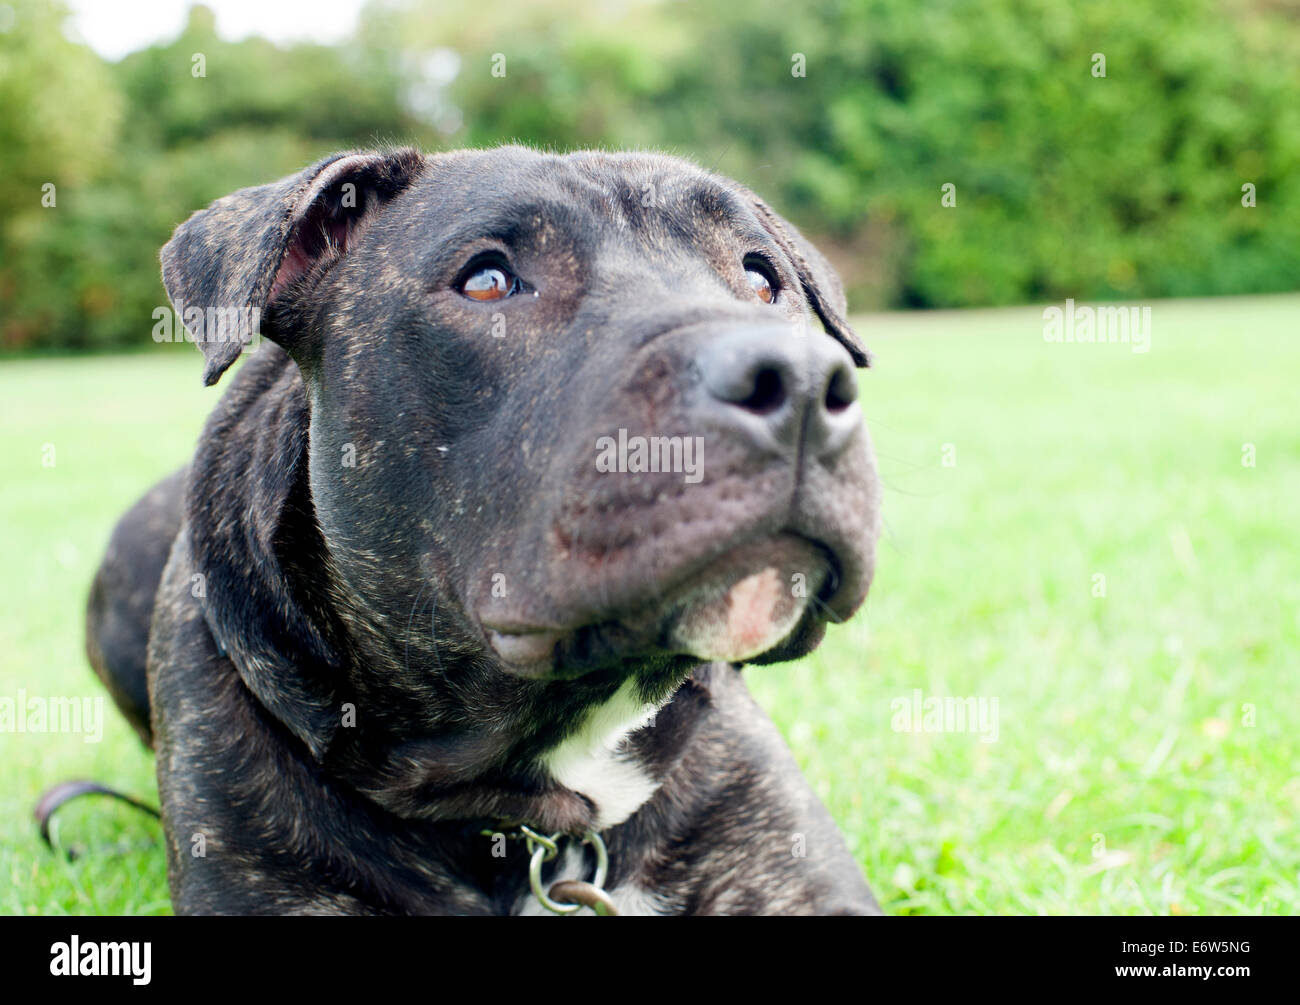 Beautiful English Staffordshire Bull Terrier resting in a London park. - Stock Image